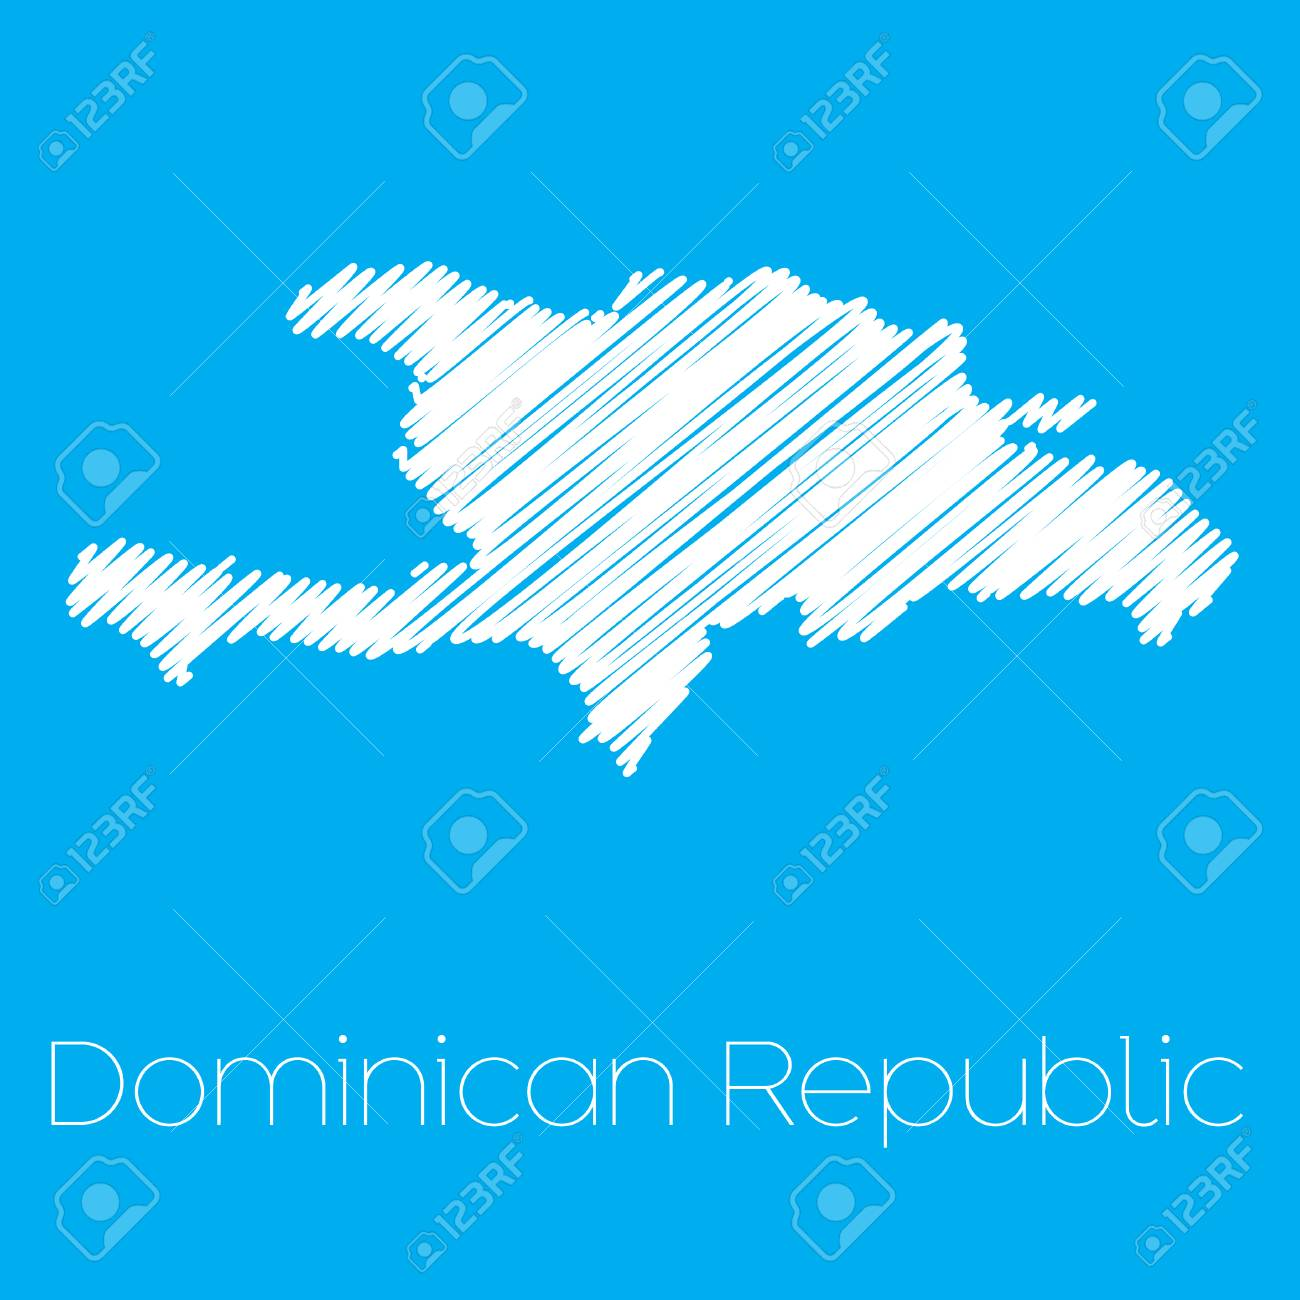 Dominican Republic Map on